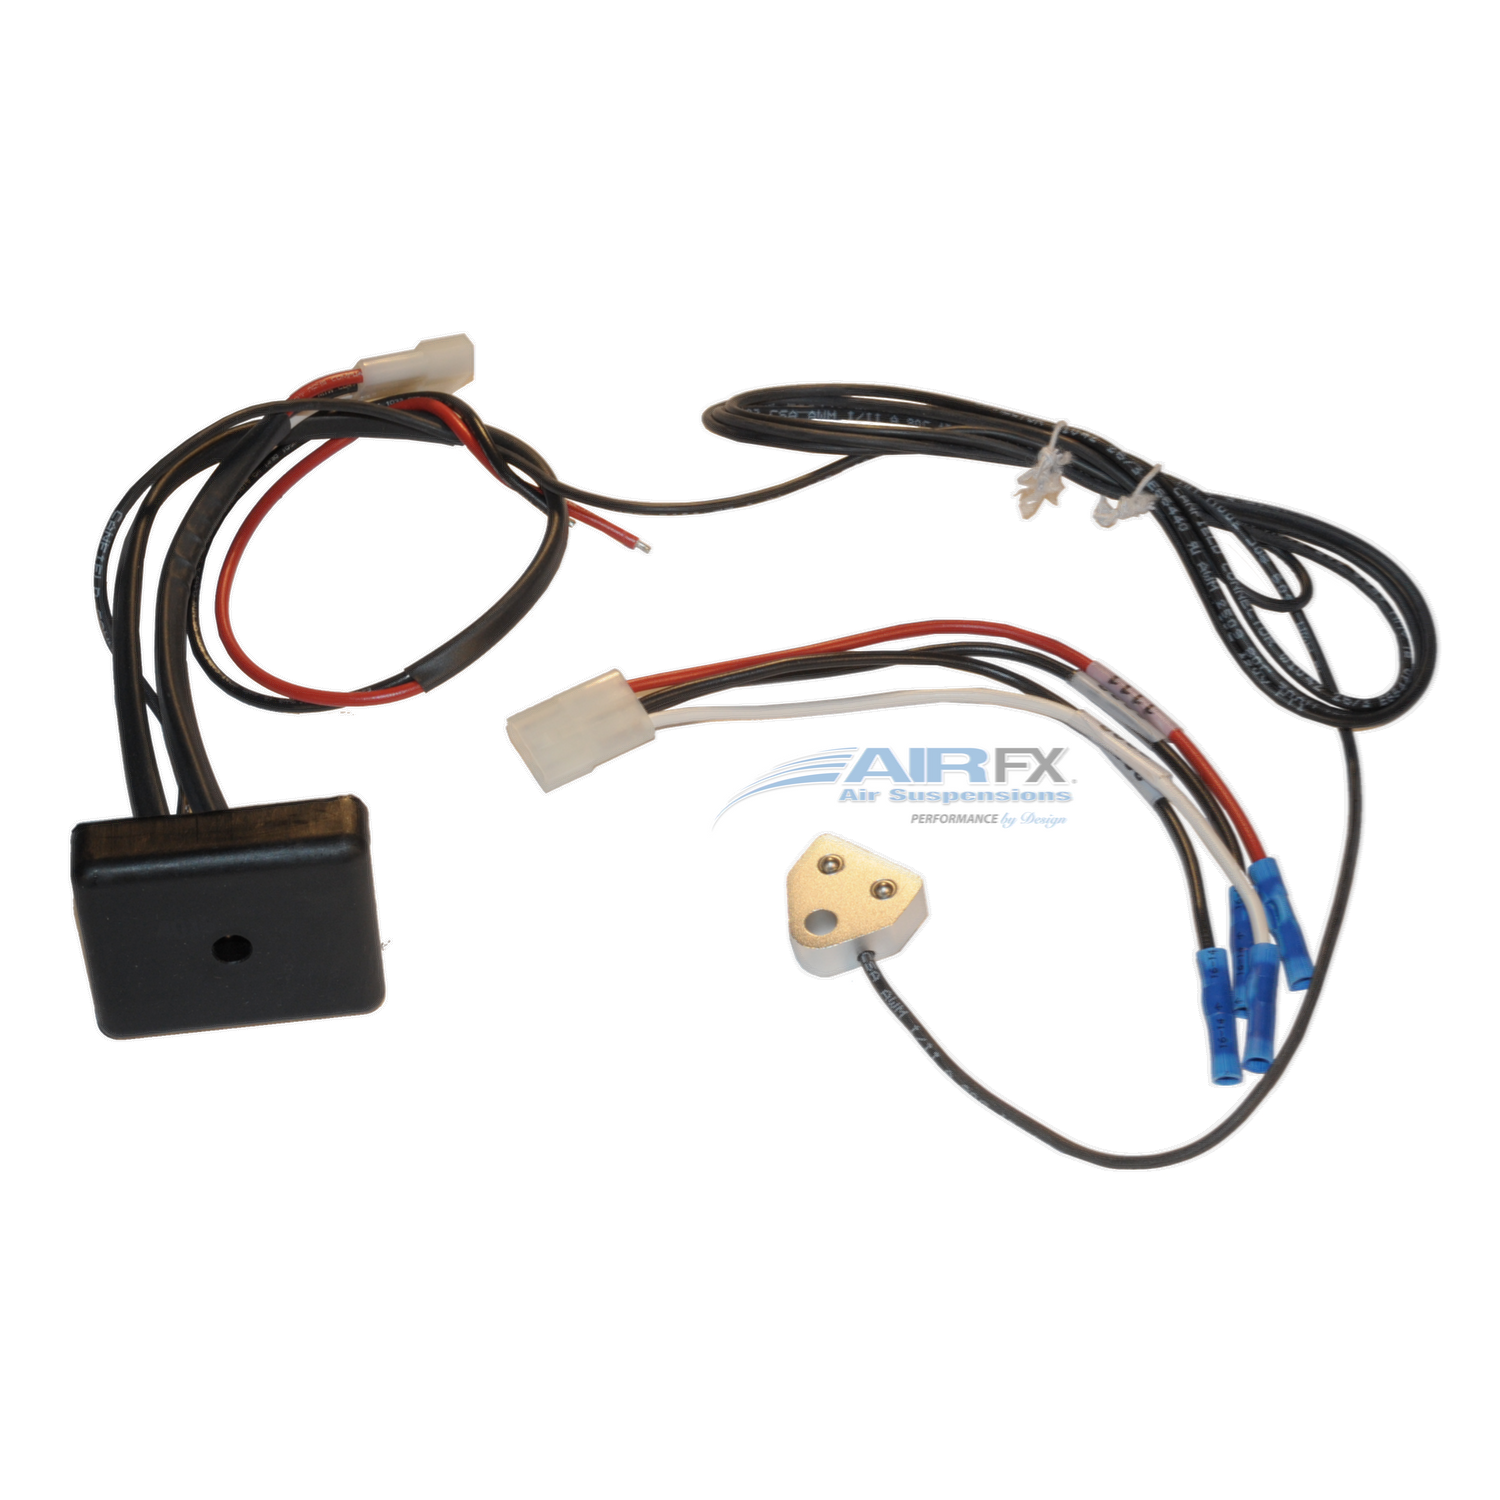 Micro Button Harness, nickel platted - FXA-1010-MB-1 [+$440.00]